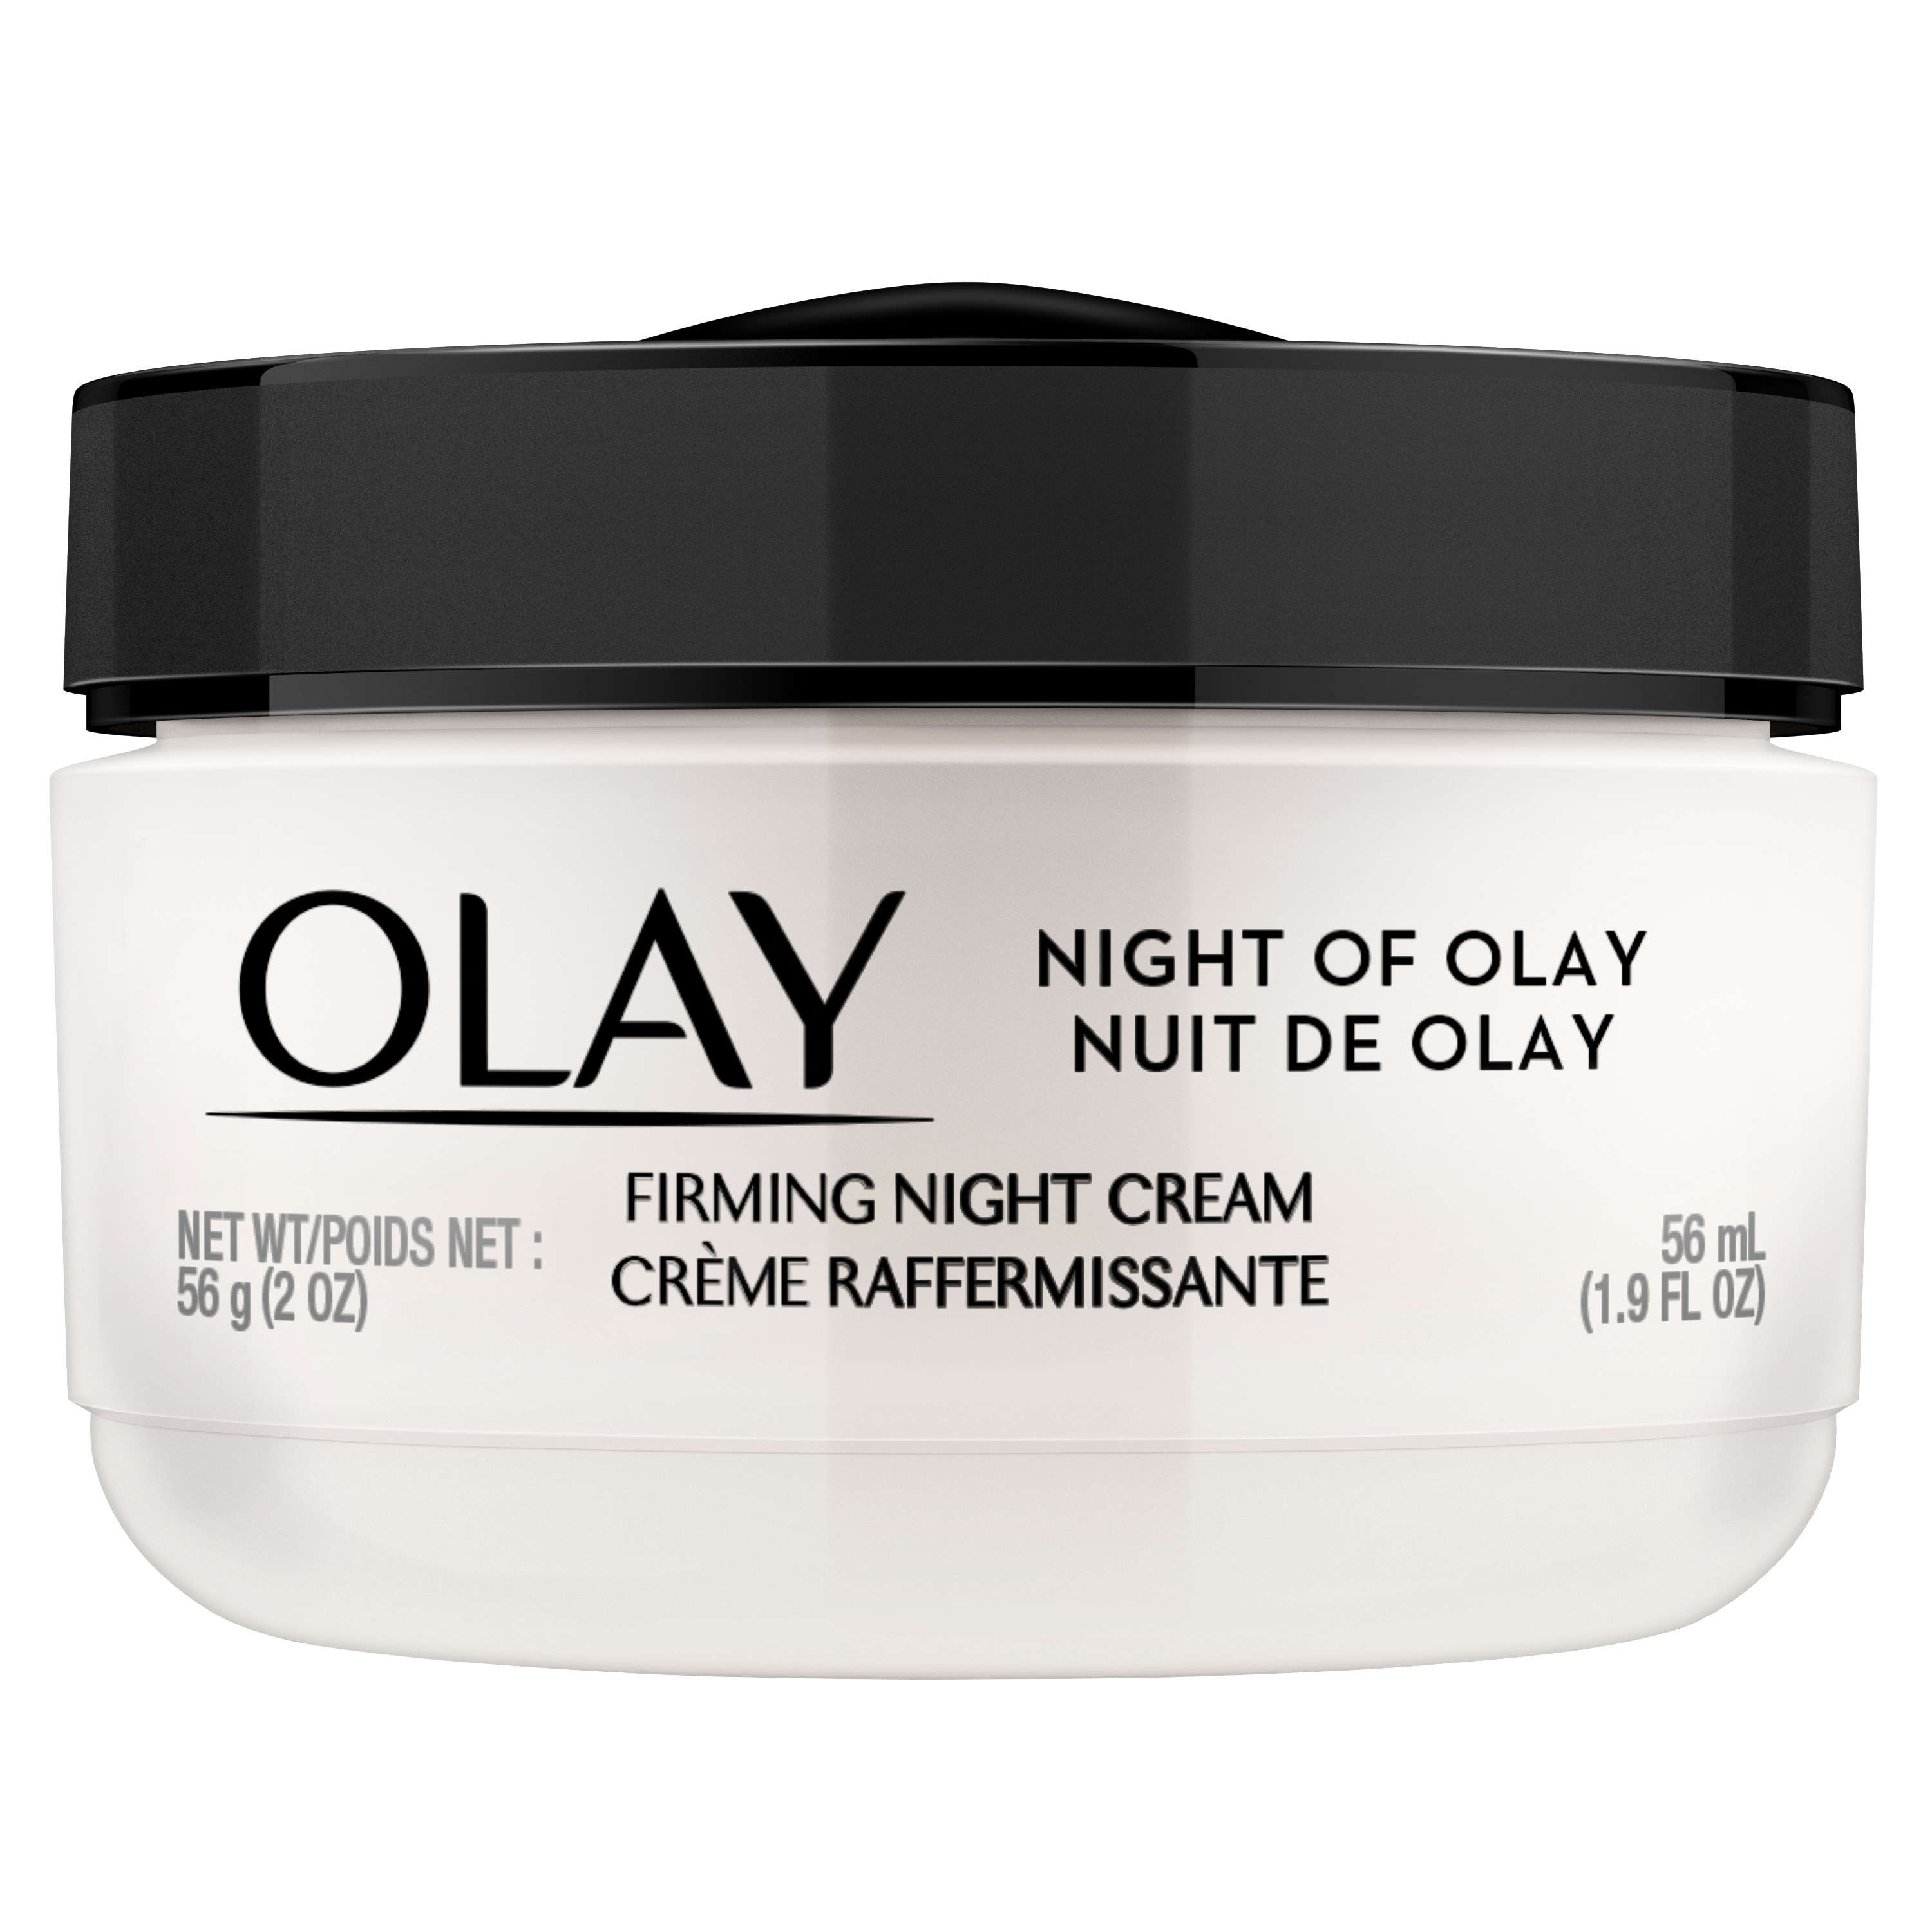 Night of Olay Firming Night Cream Face Moisturizer, 1.9 oz